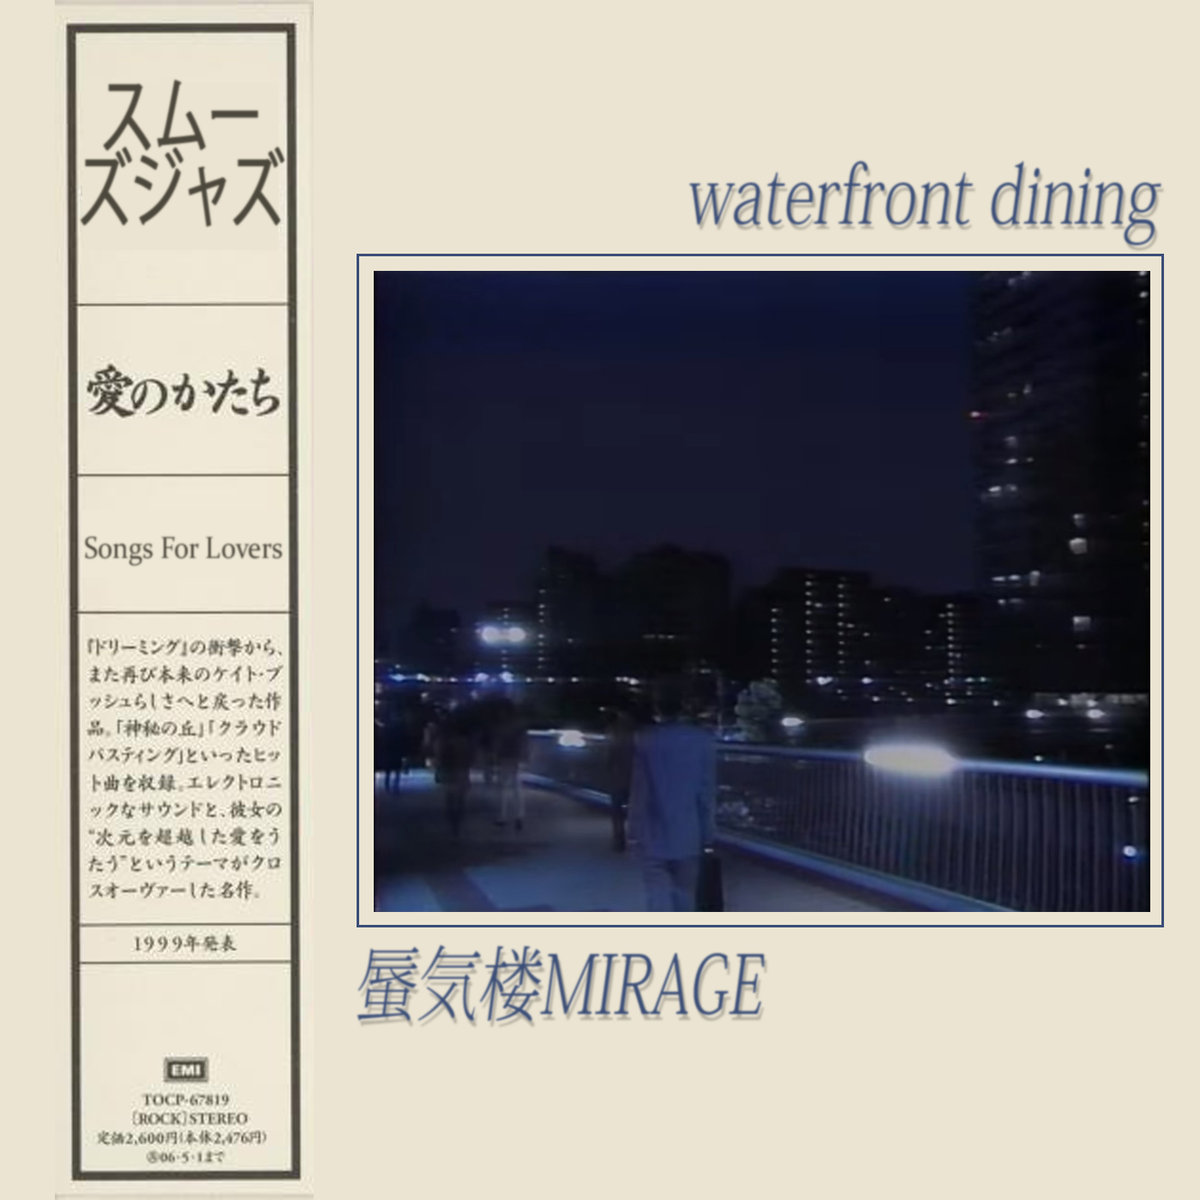 Album Of The Day: 蜃気楼MIRAGE U0026 Waterfront Dining,u201cSongs For Loversu201d «  Bandcamp Daily